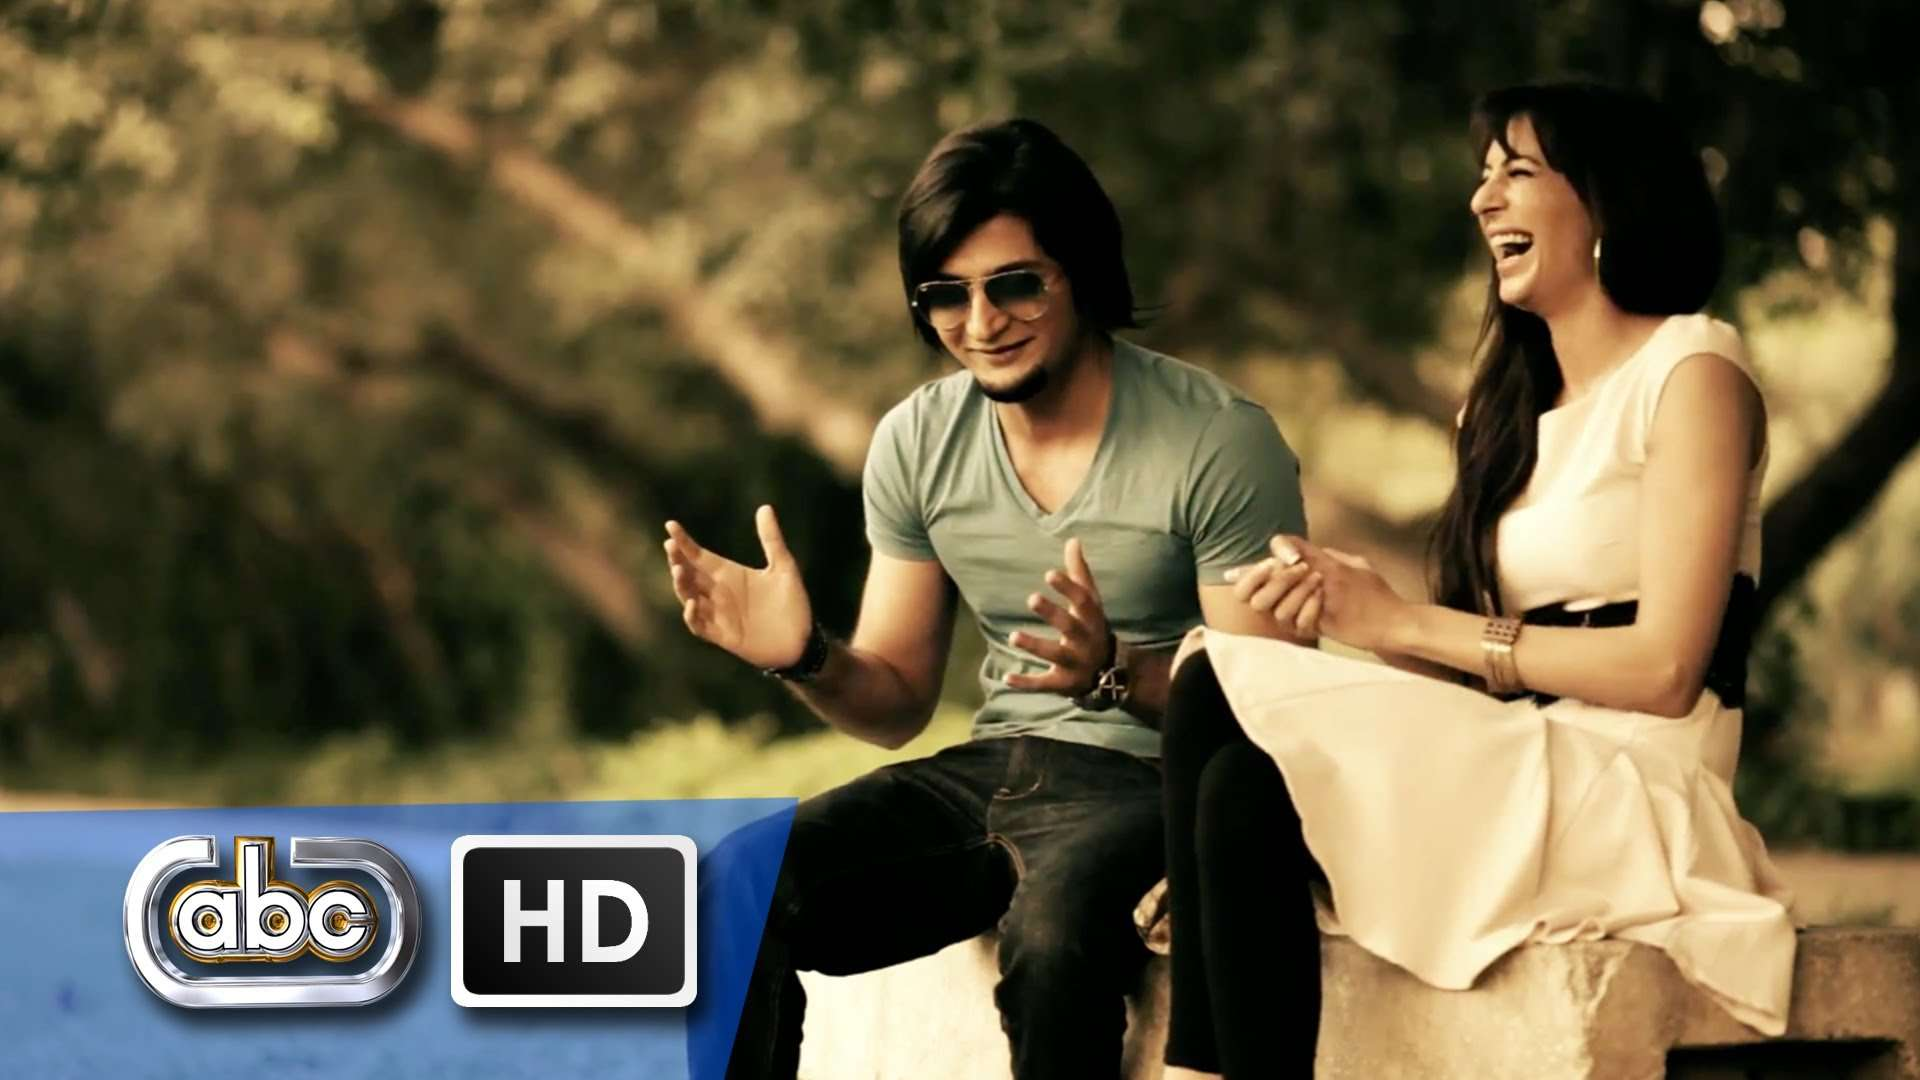 Punjabi Song Khair Mangdi Sung By Bilal Saeed Feat  Dr Zeus & Young Fateh